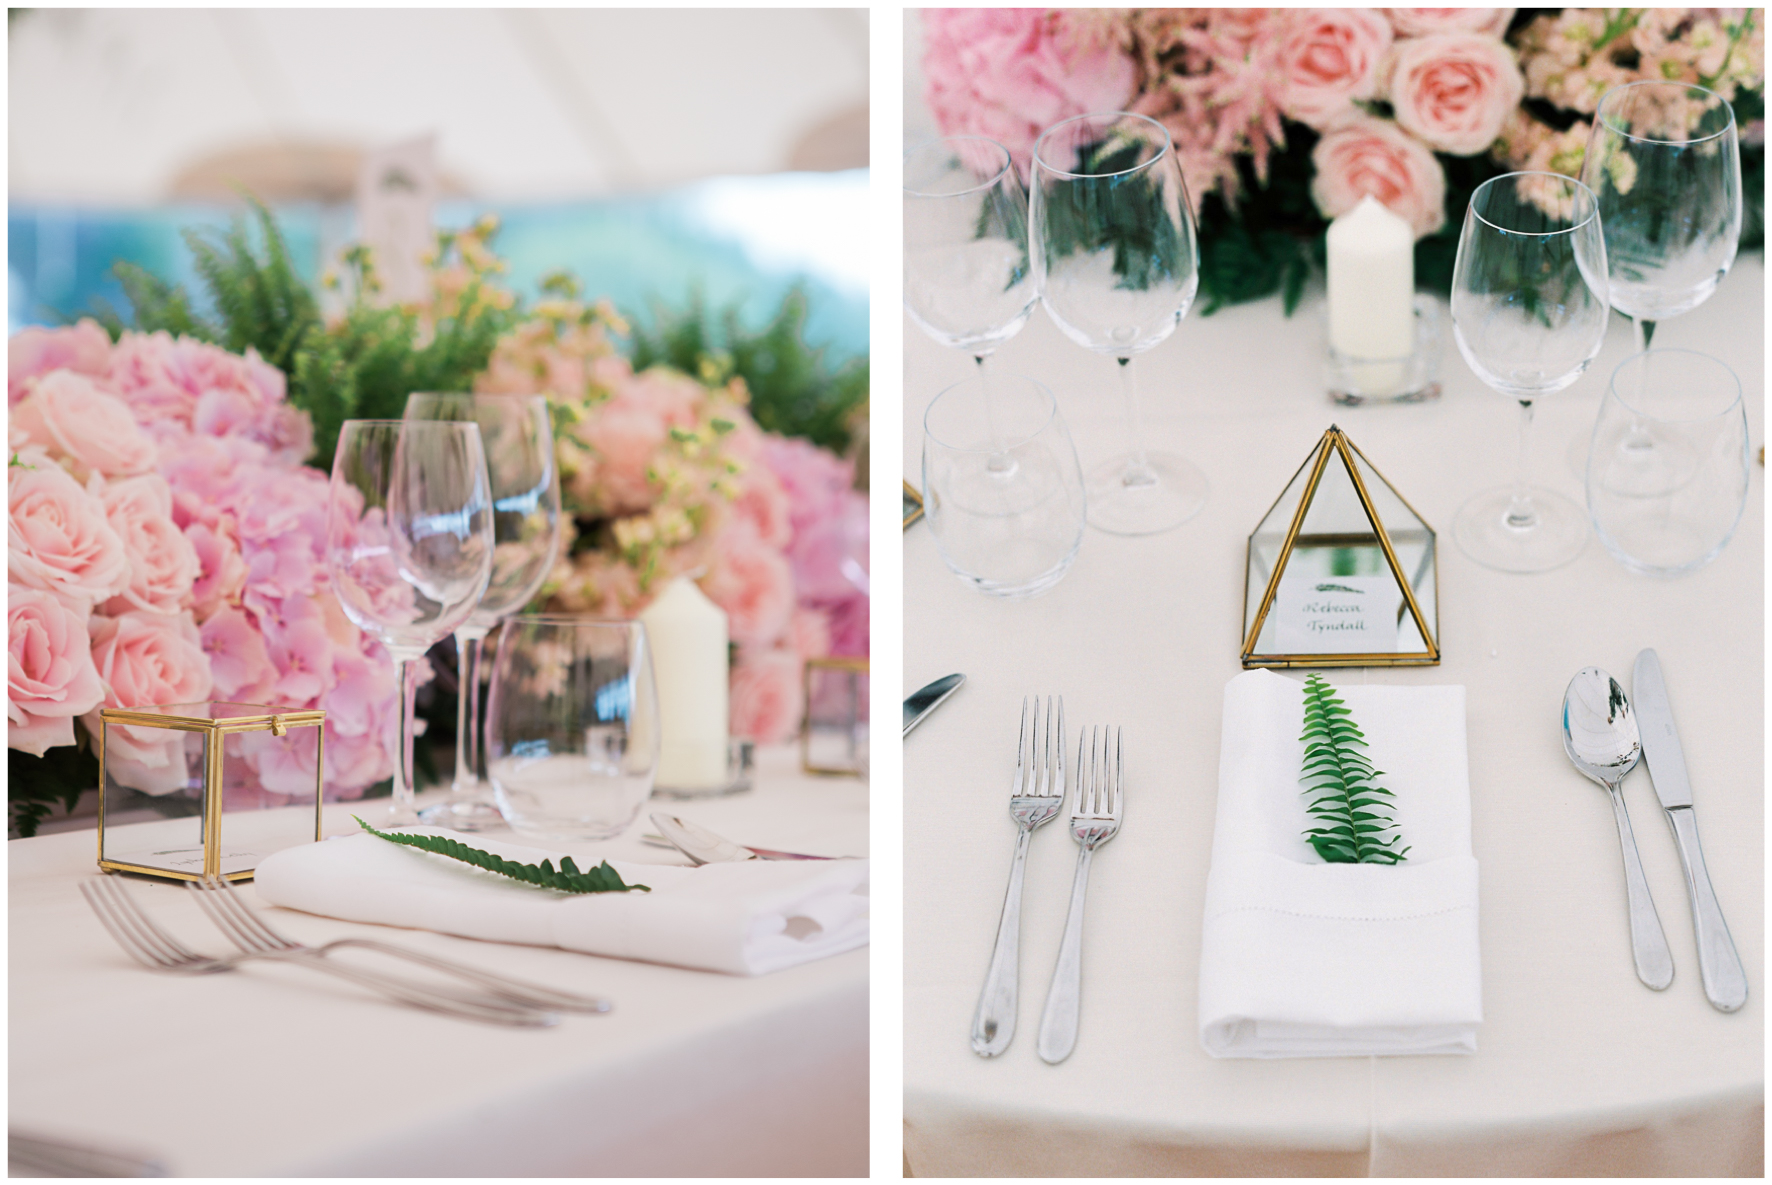 glamping wedding, Lucy Davenport Photography, home wedding, Sperry tent, PapaKata, ferns, greenery,